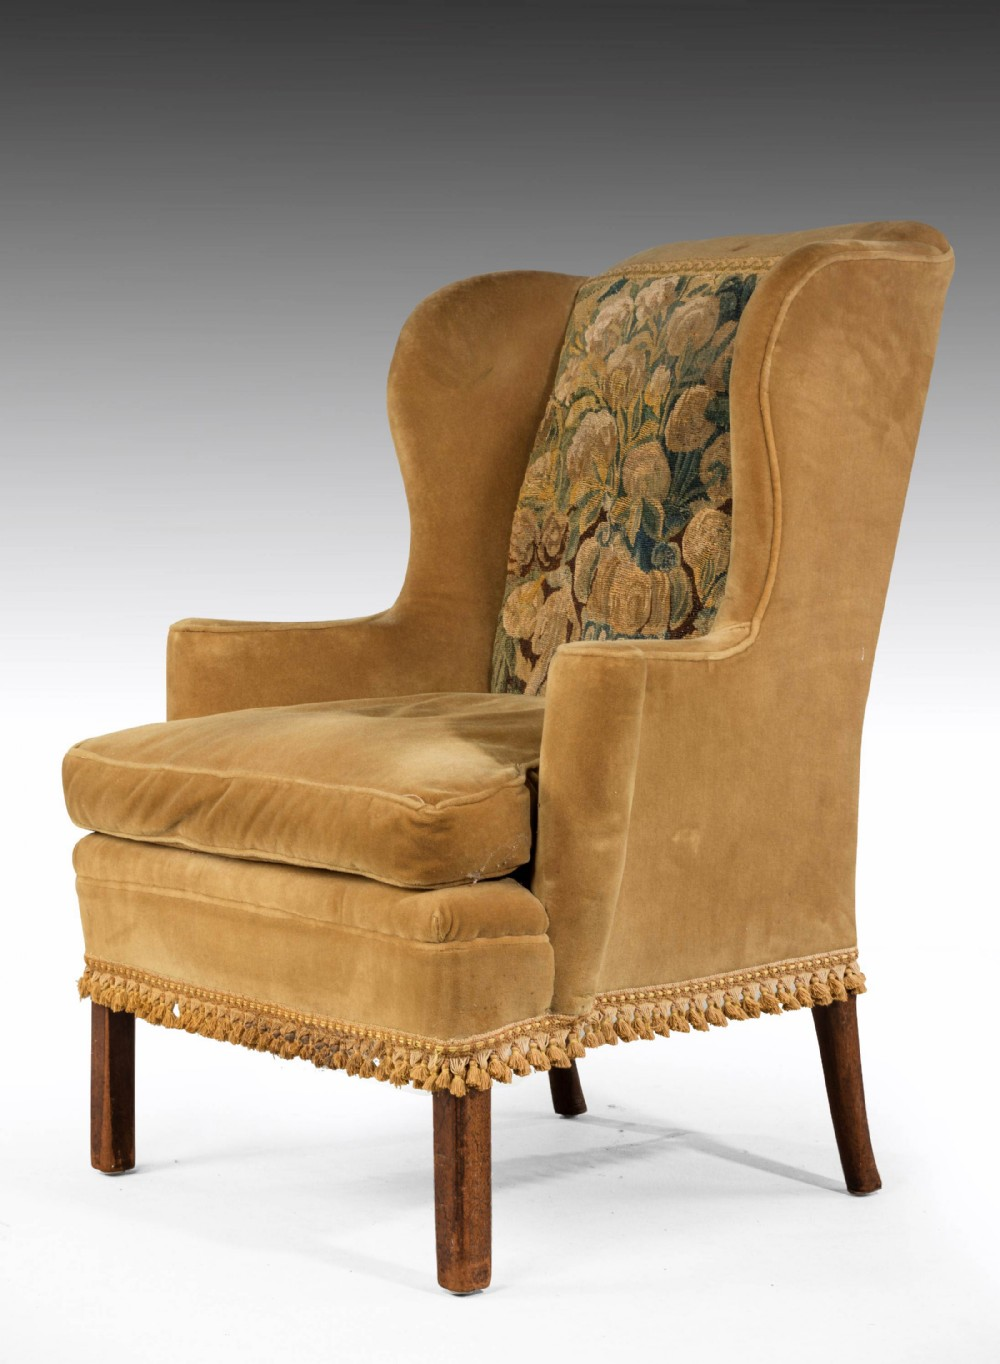 a george iii period wing chair incorporating a verdure tapestry panel